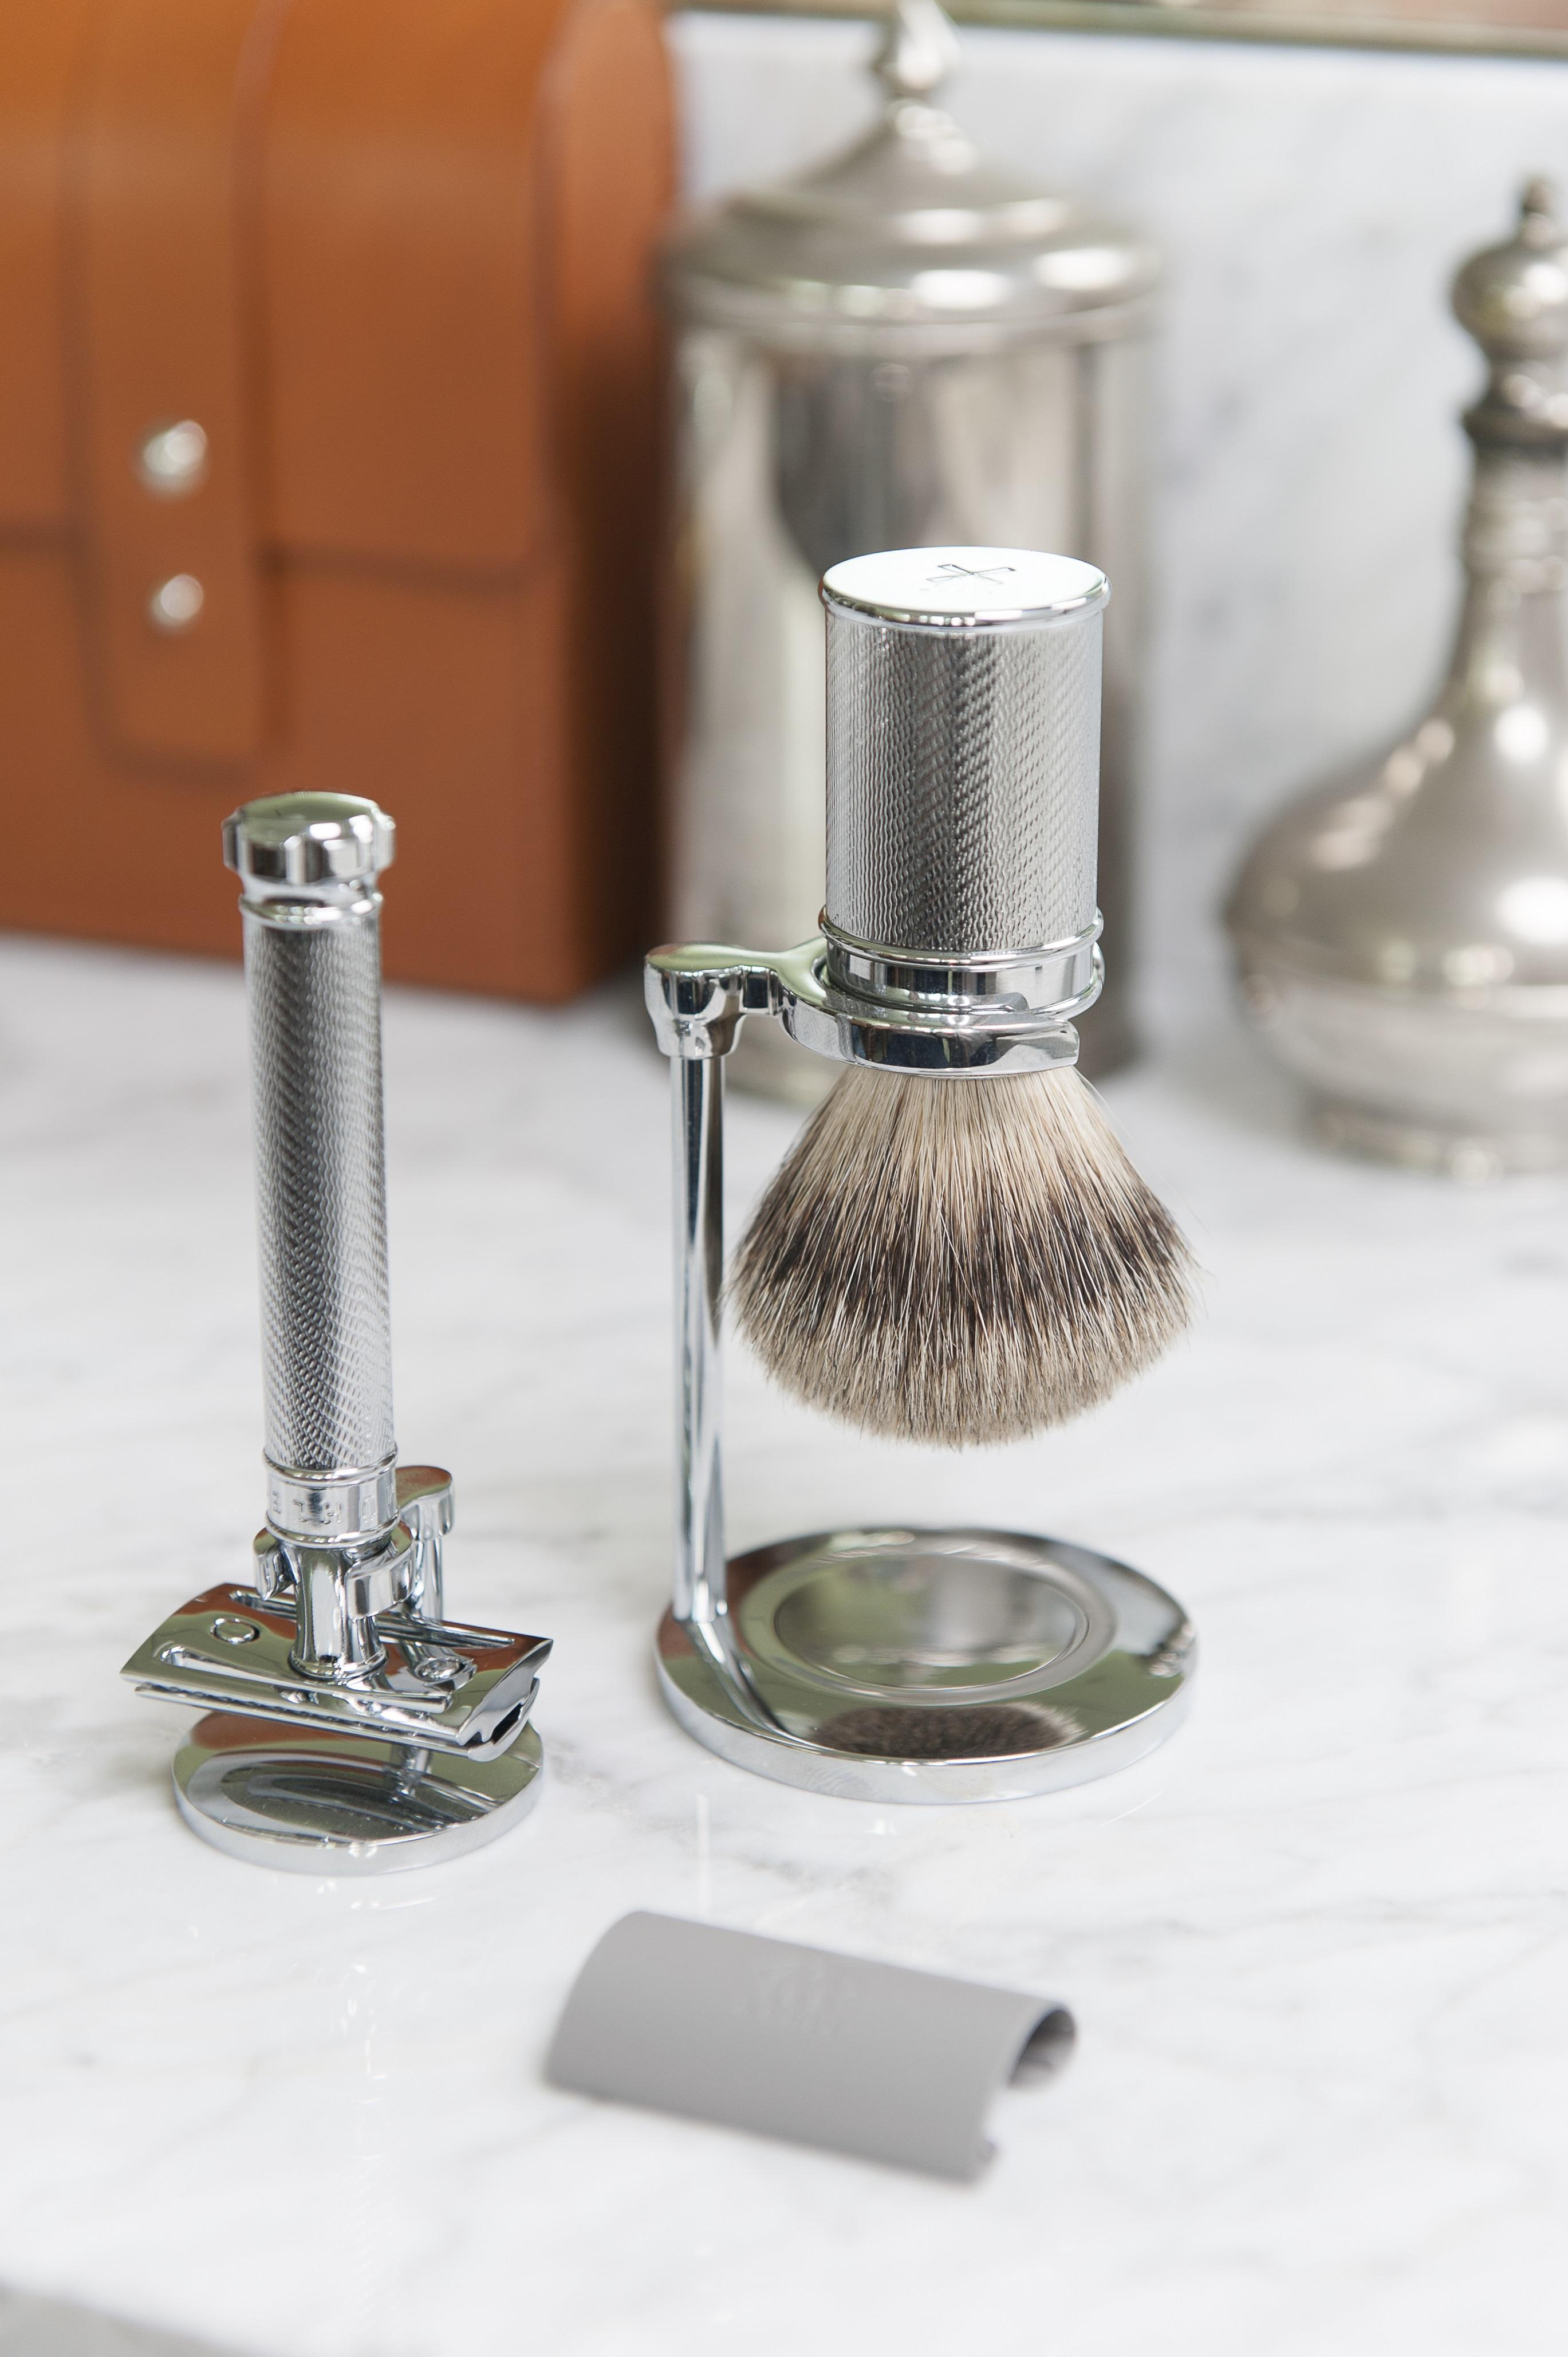 MÜHLE TRADITIONAL Silvertip Badger, Safety Razor Set with Blade Guard